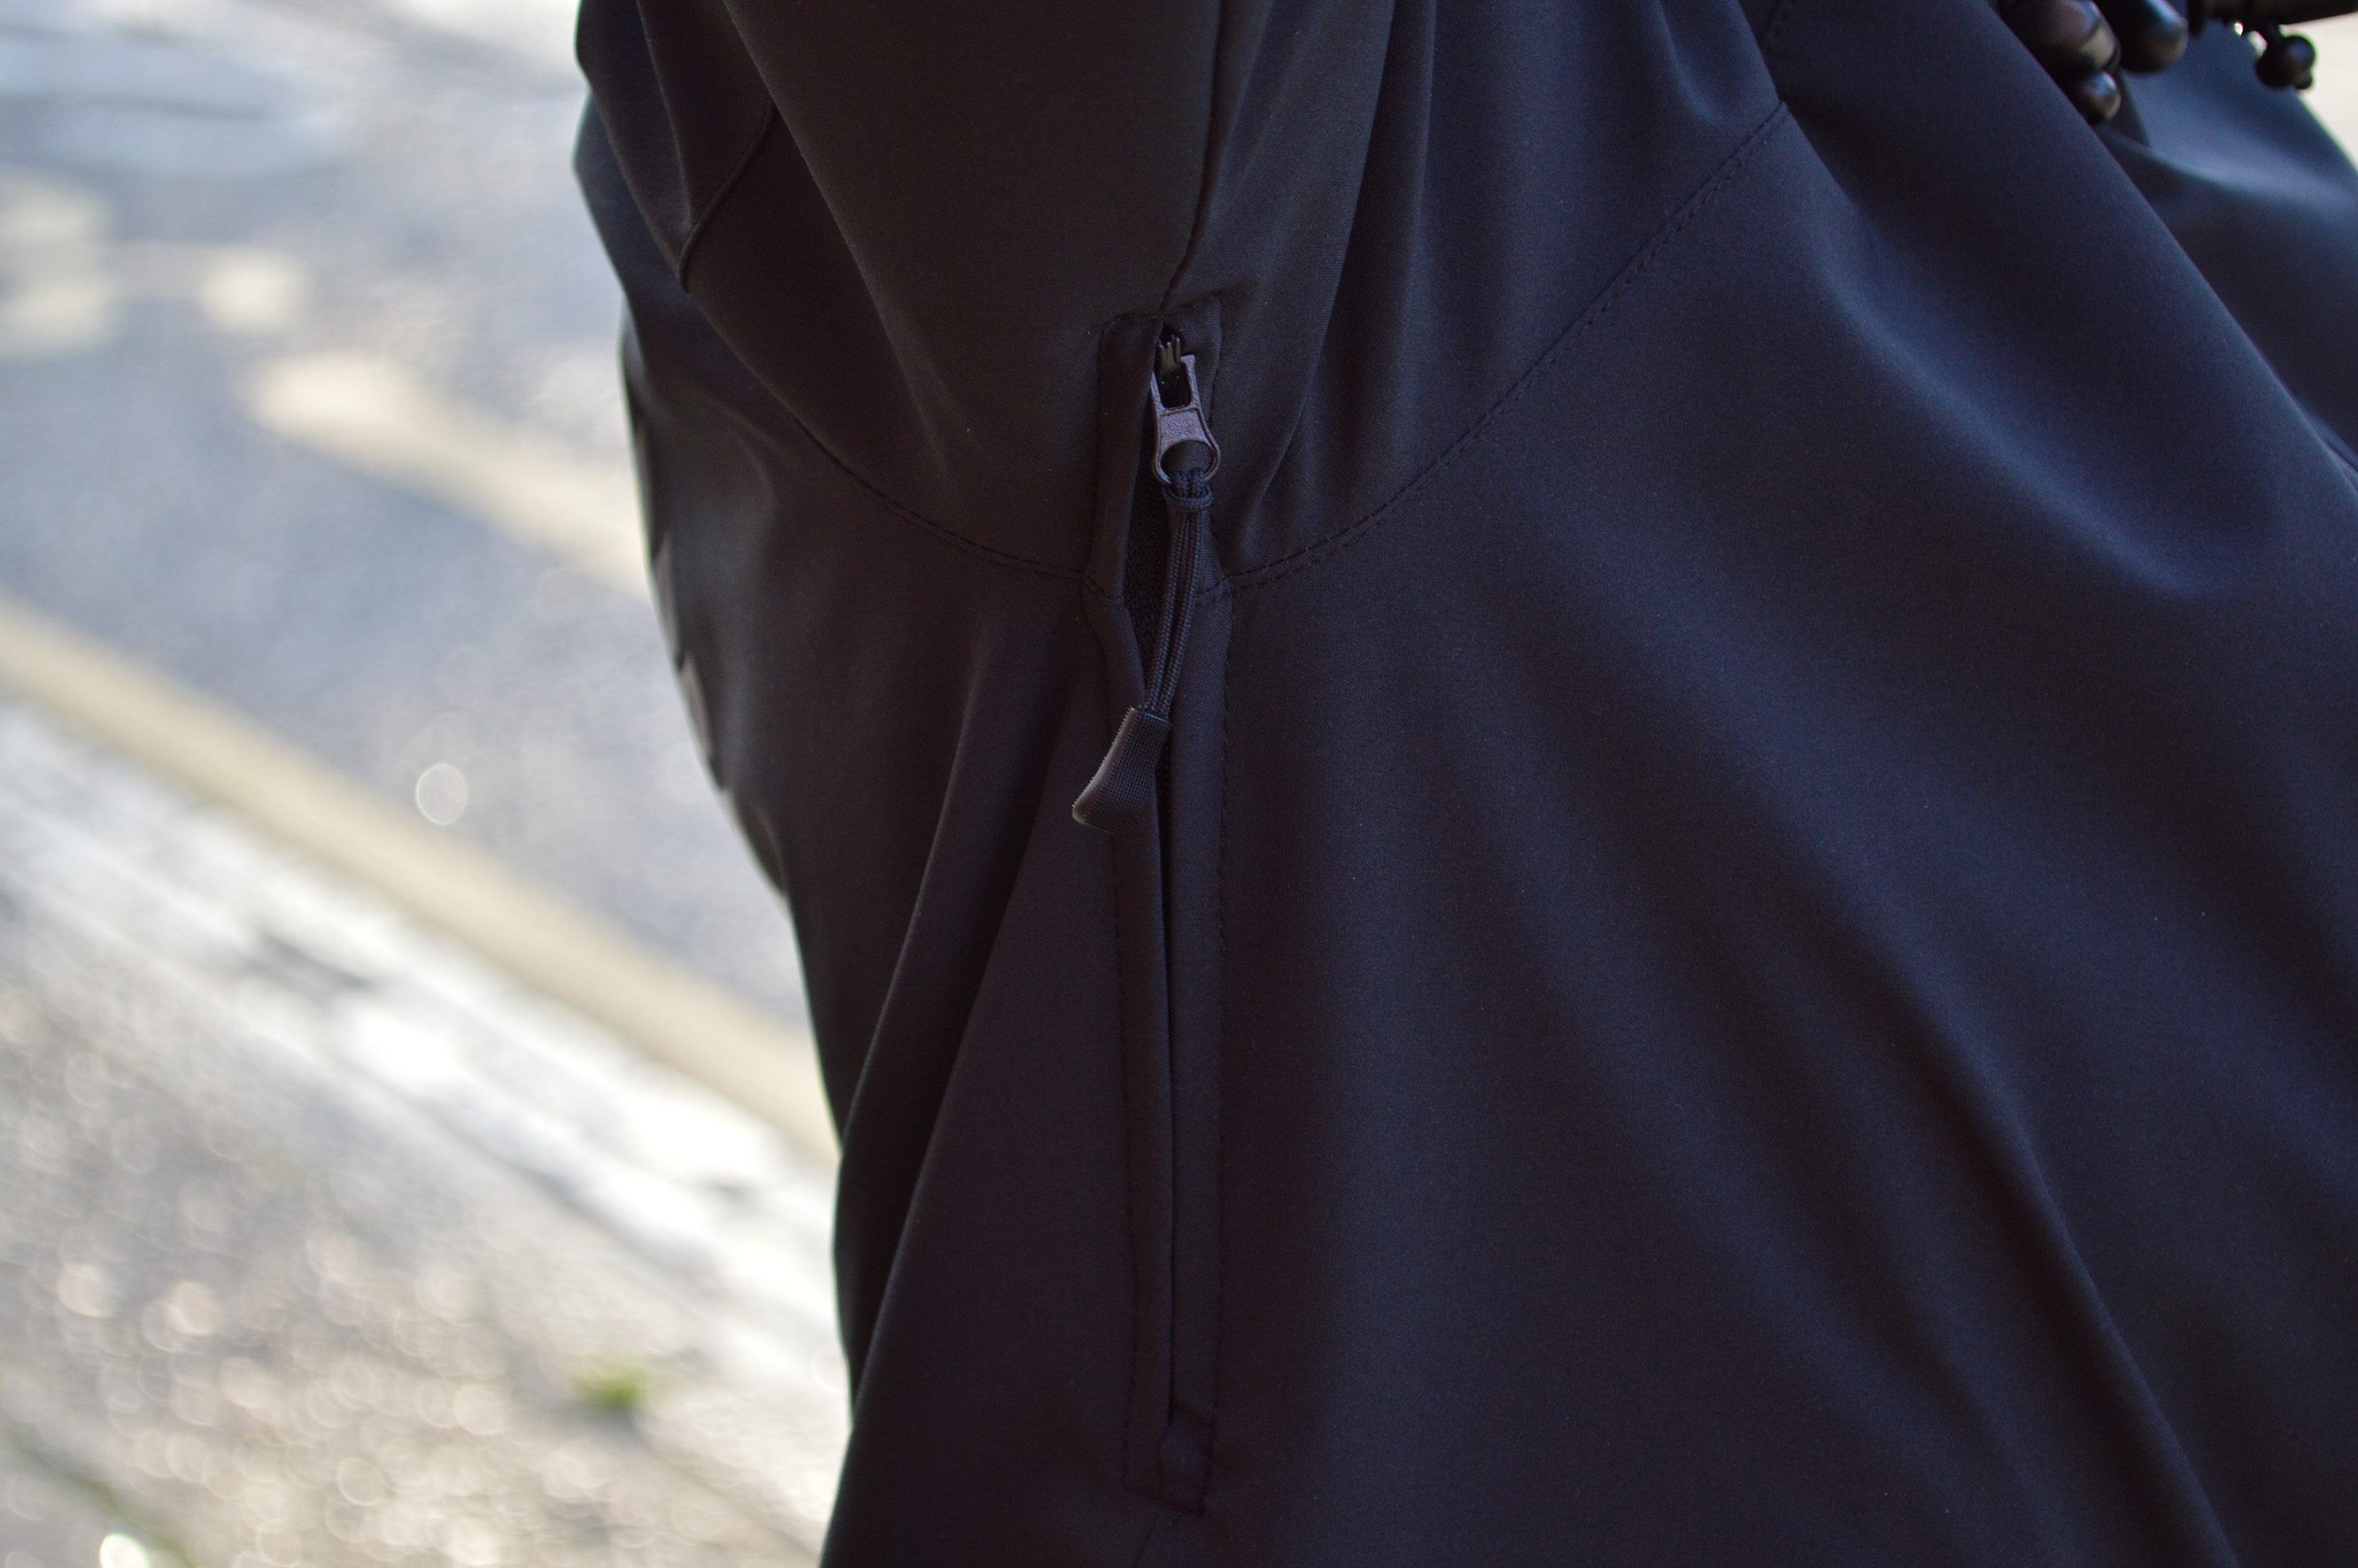 4RIZ WATERPROOF JACKET – THE FIXED LIFE